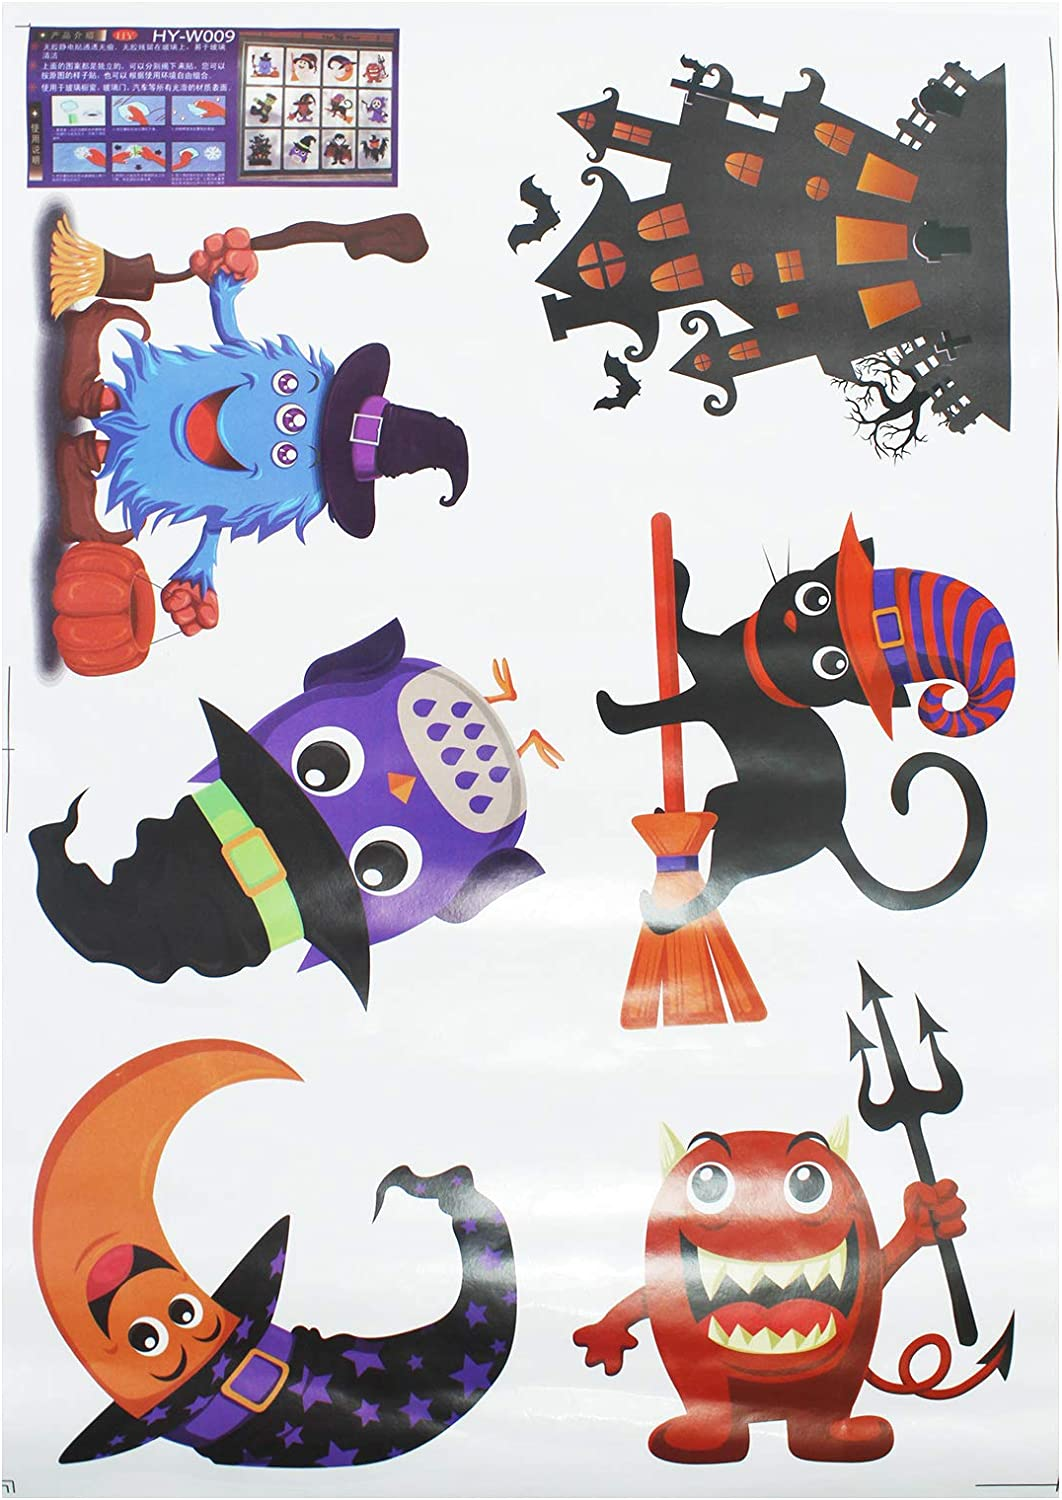 9 Faces Mirrors Thanksgiving Decorations Party Ornaments Halloweens Pumpkins Decals 11 Pieces Jack-O-Lantern Clings Decals For Windows Wall Glass Doors DIY Required Refrigerator Doors